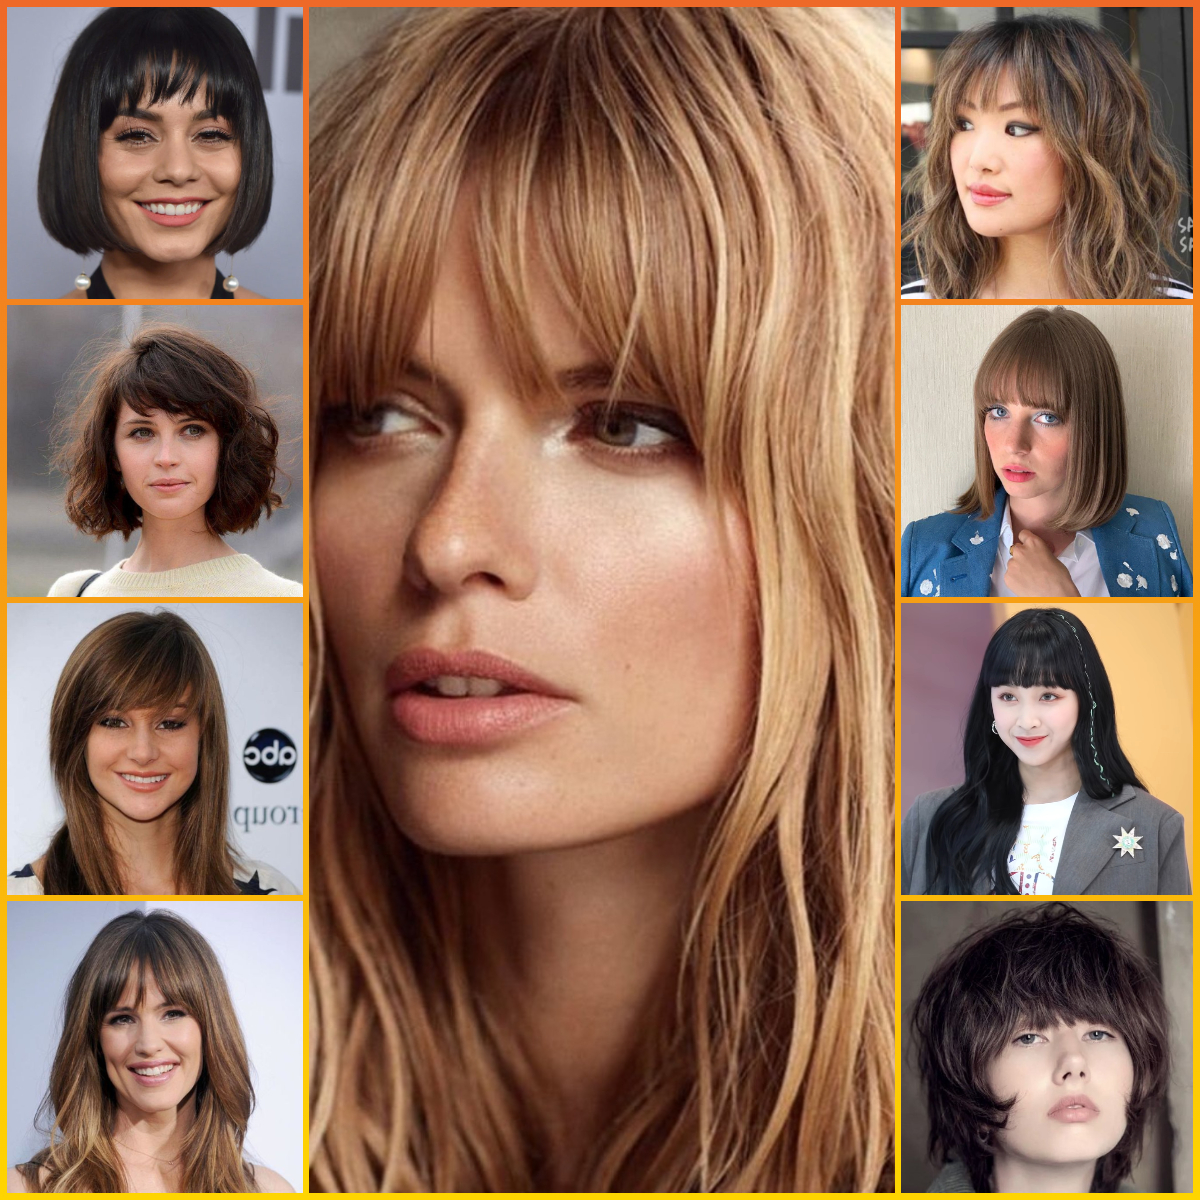 35 Attractive Summer Haircuts With Bangs 2020 New Fringe Hairstyles Ideas For Ladies